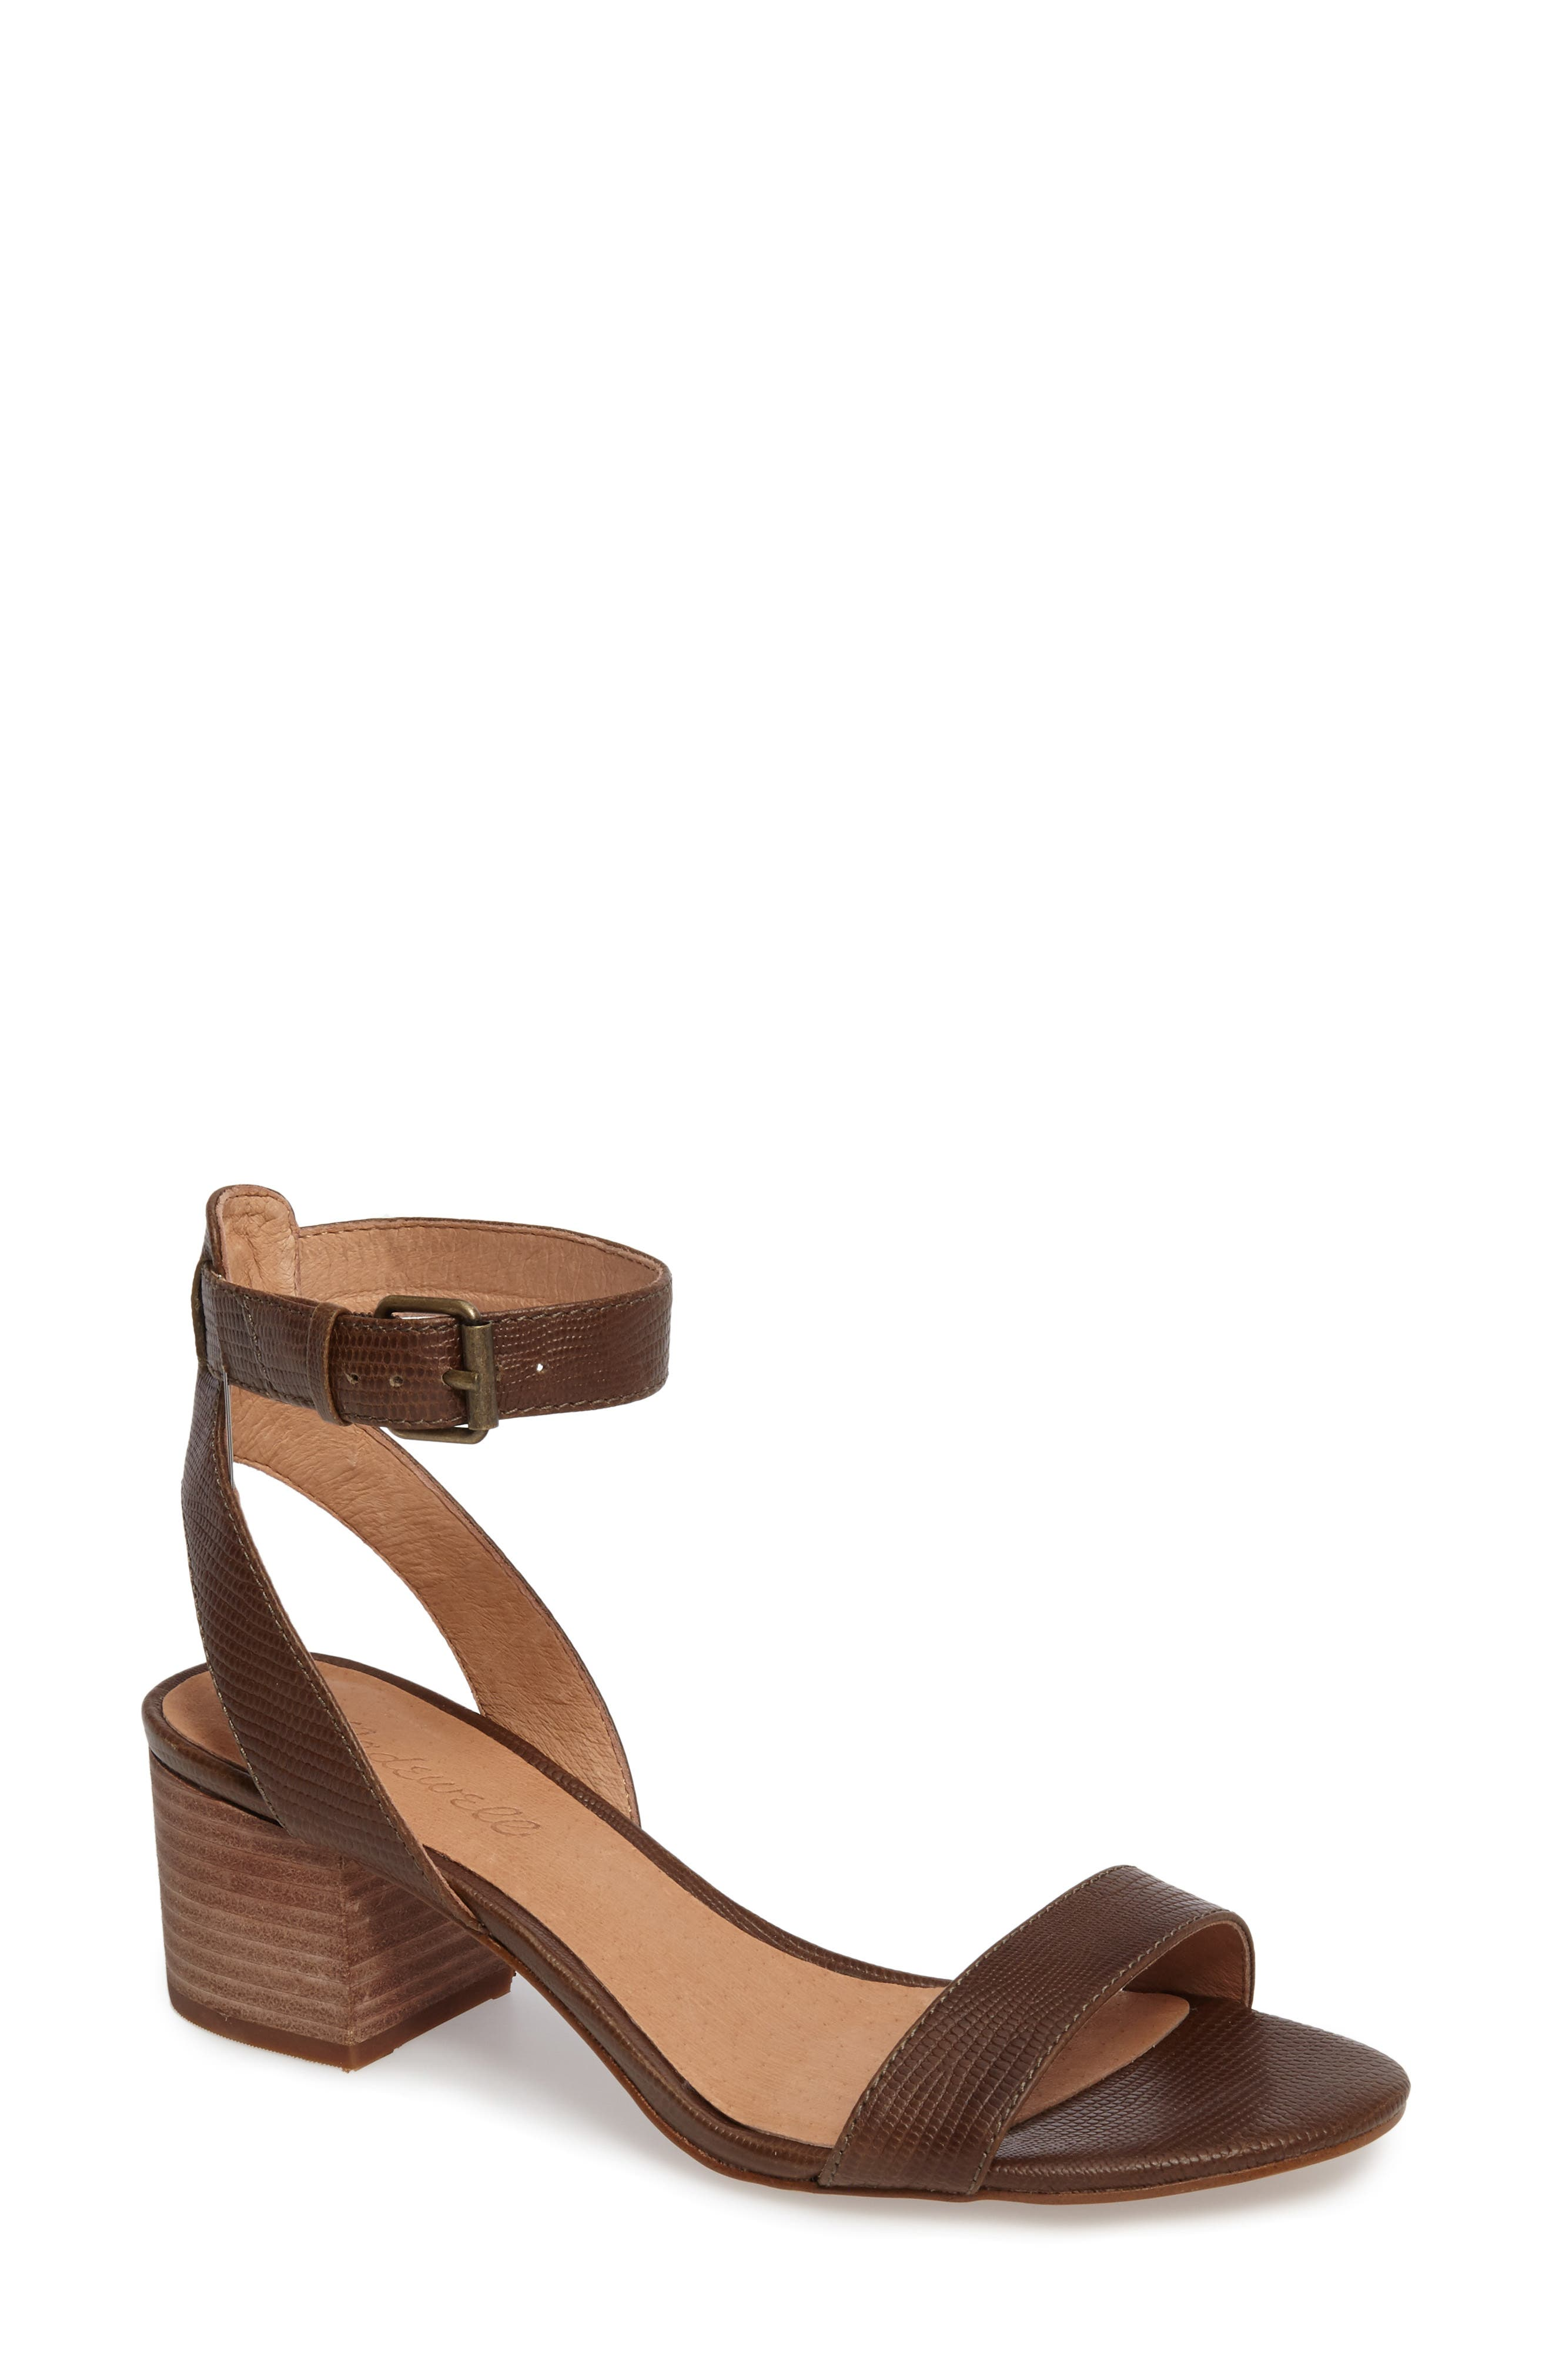 Alice Embossed Ankle Wrap Sandal,                         Main,                         color, 250